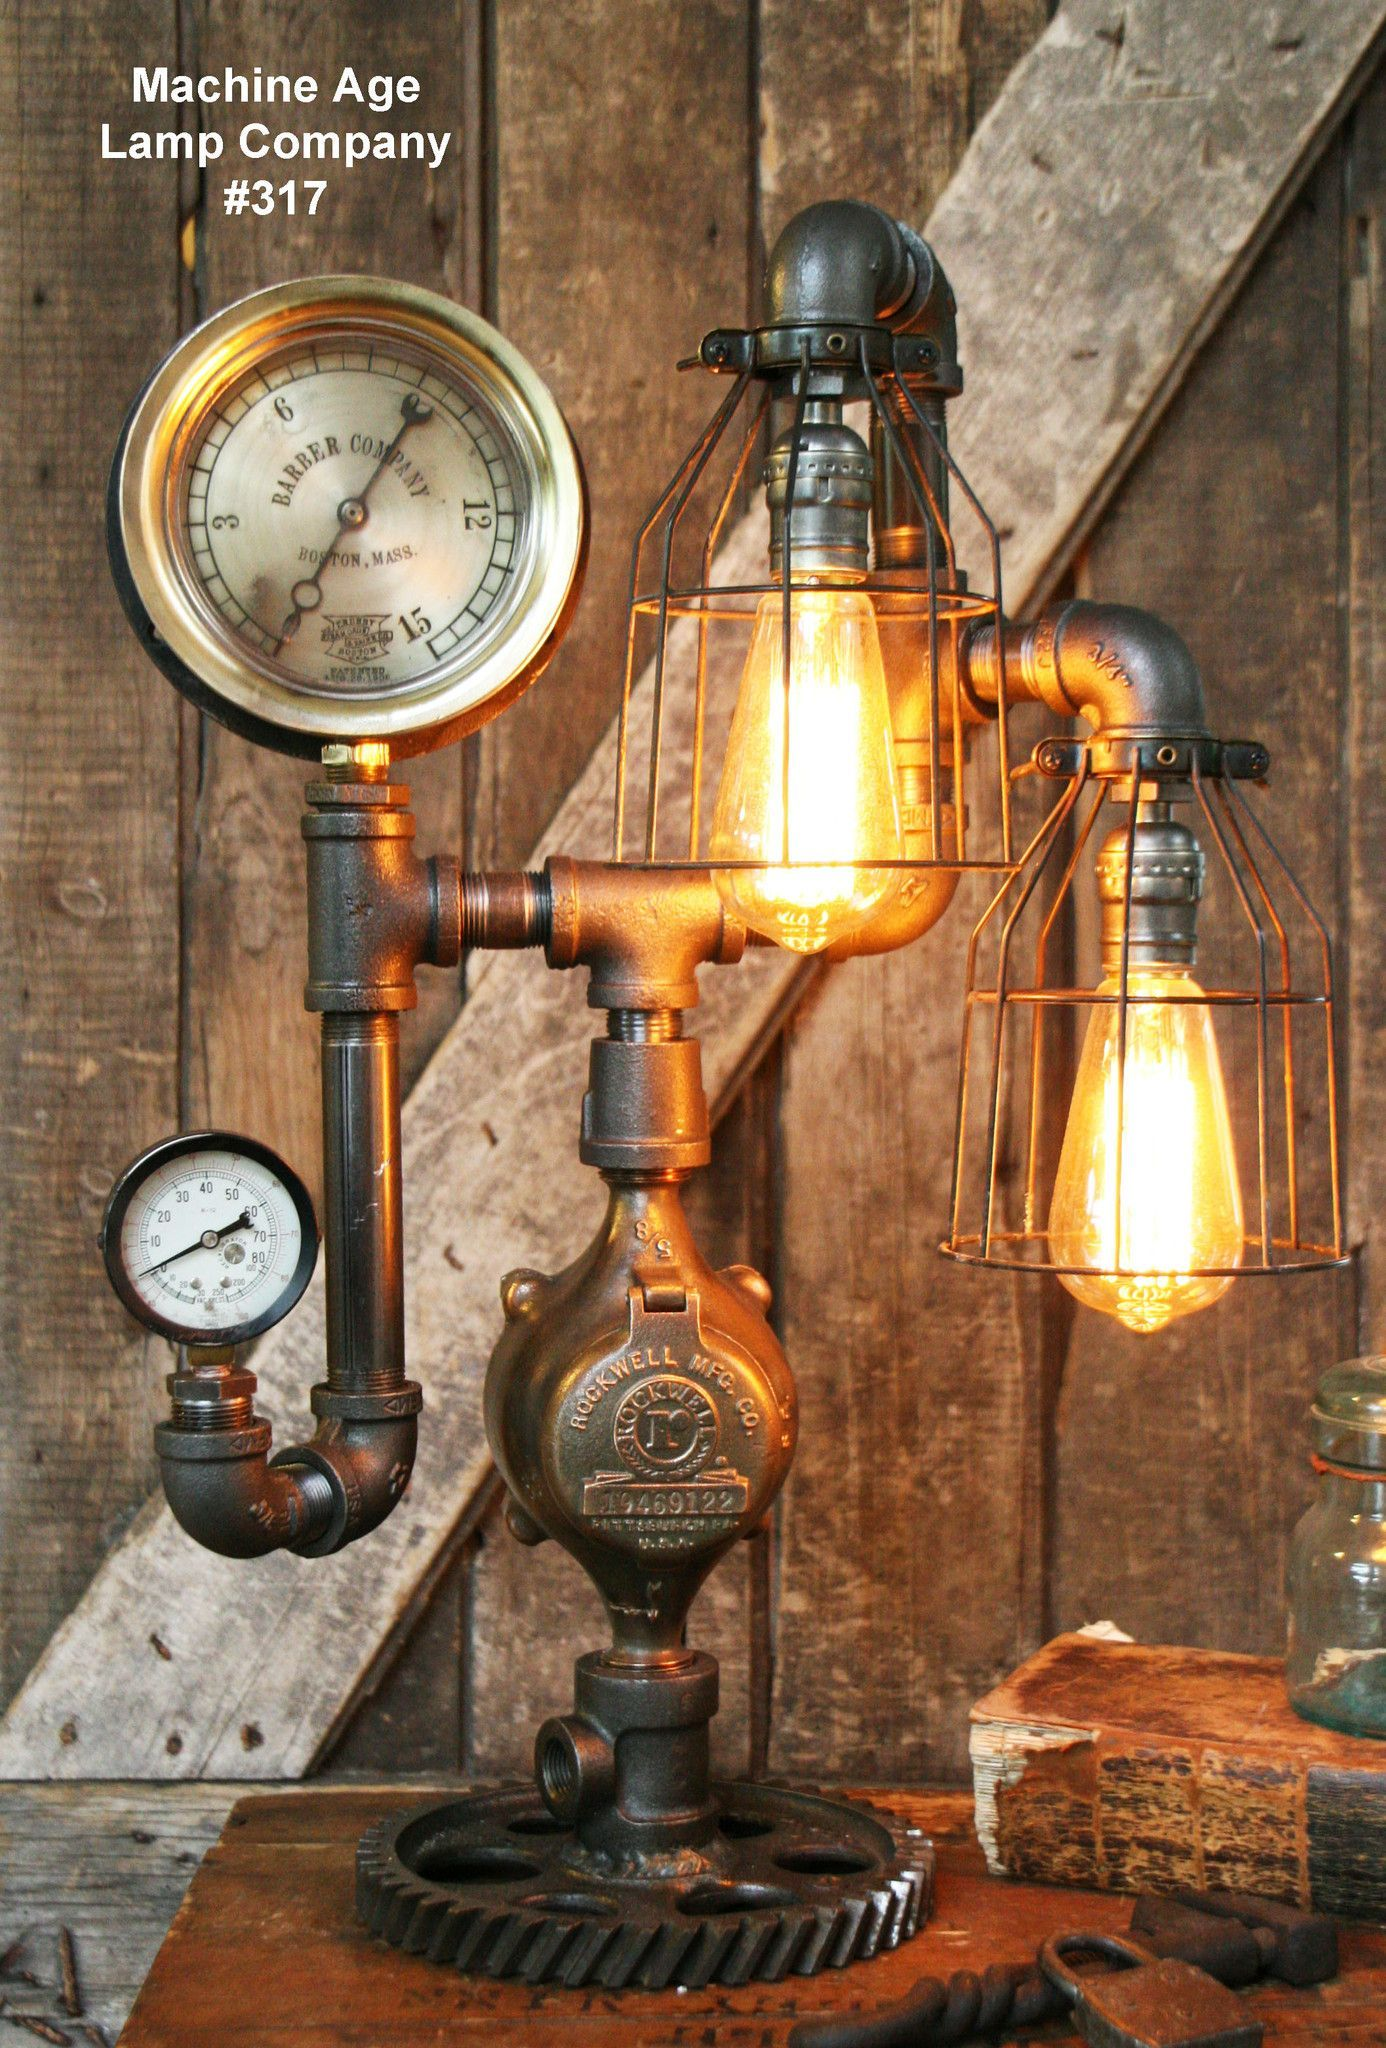 Steampunk industrial lamp steam gauge 317 sold gauges steampunk industrial lamp steam gauge 317 sold greentooth Images